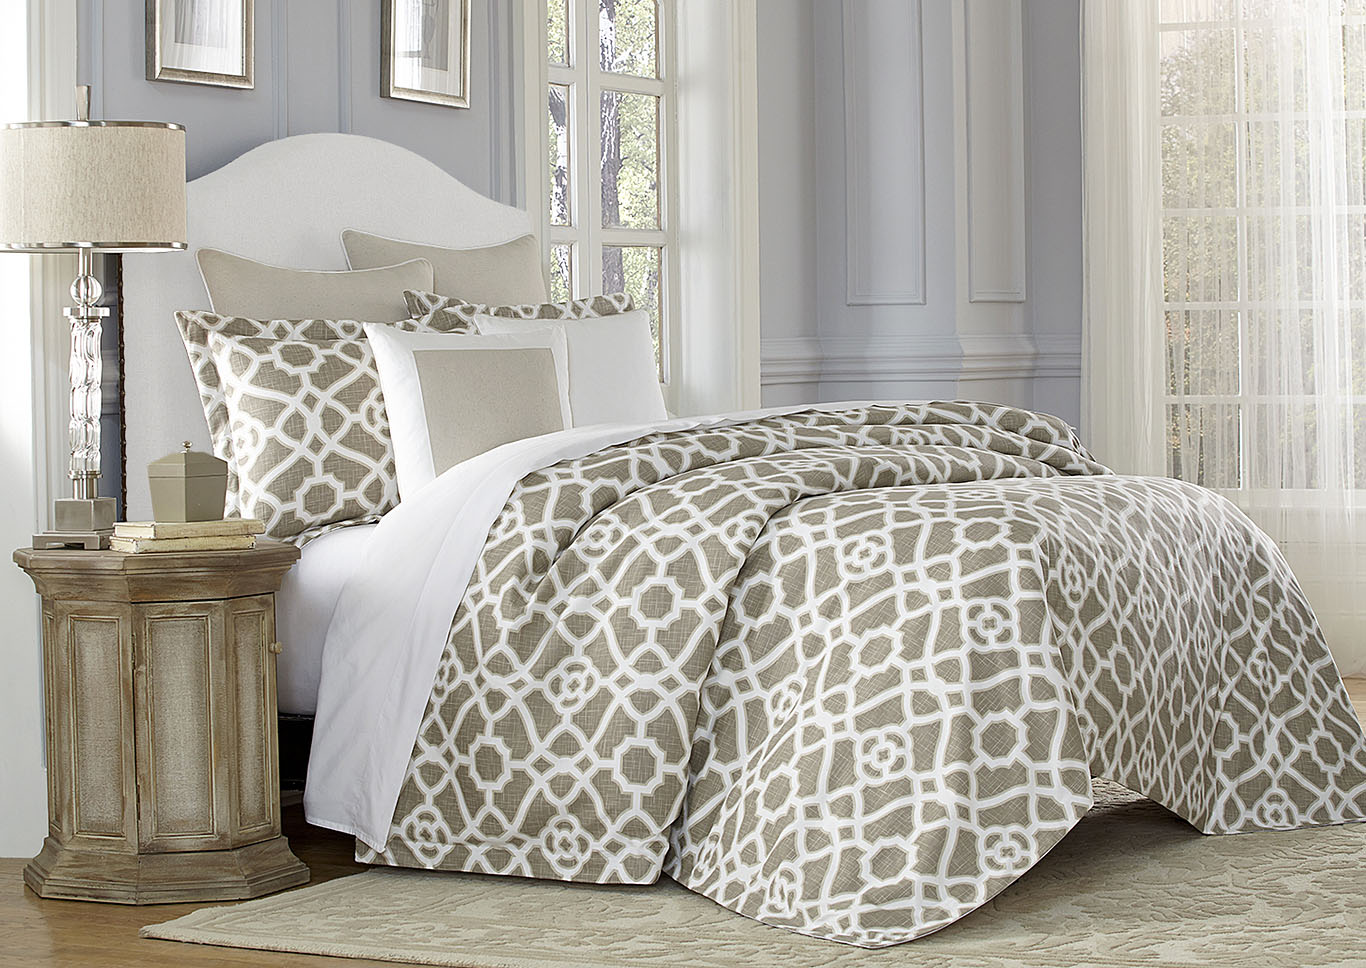 Juliette Nautral 8 pc. King Duvet Set,AICO